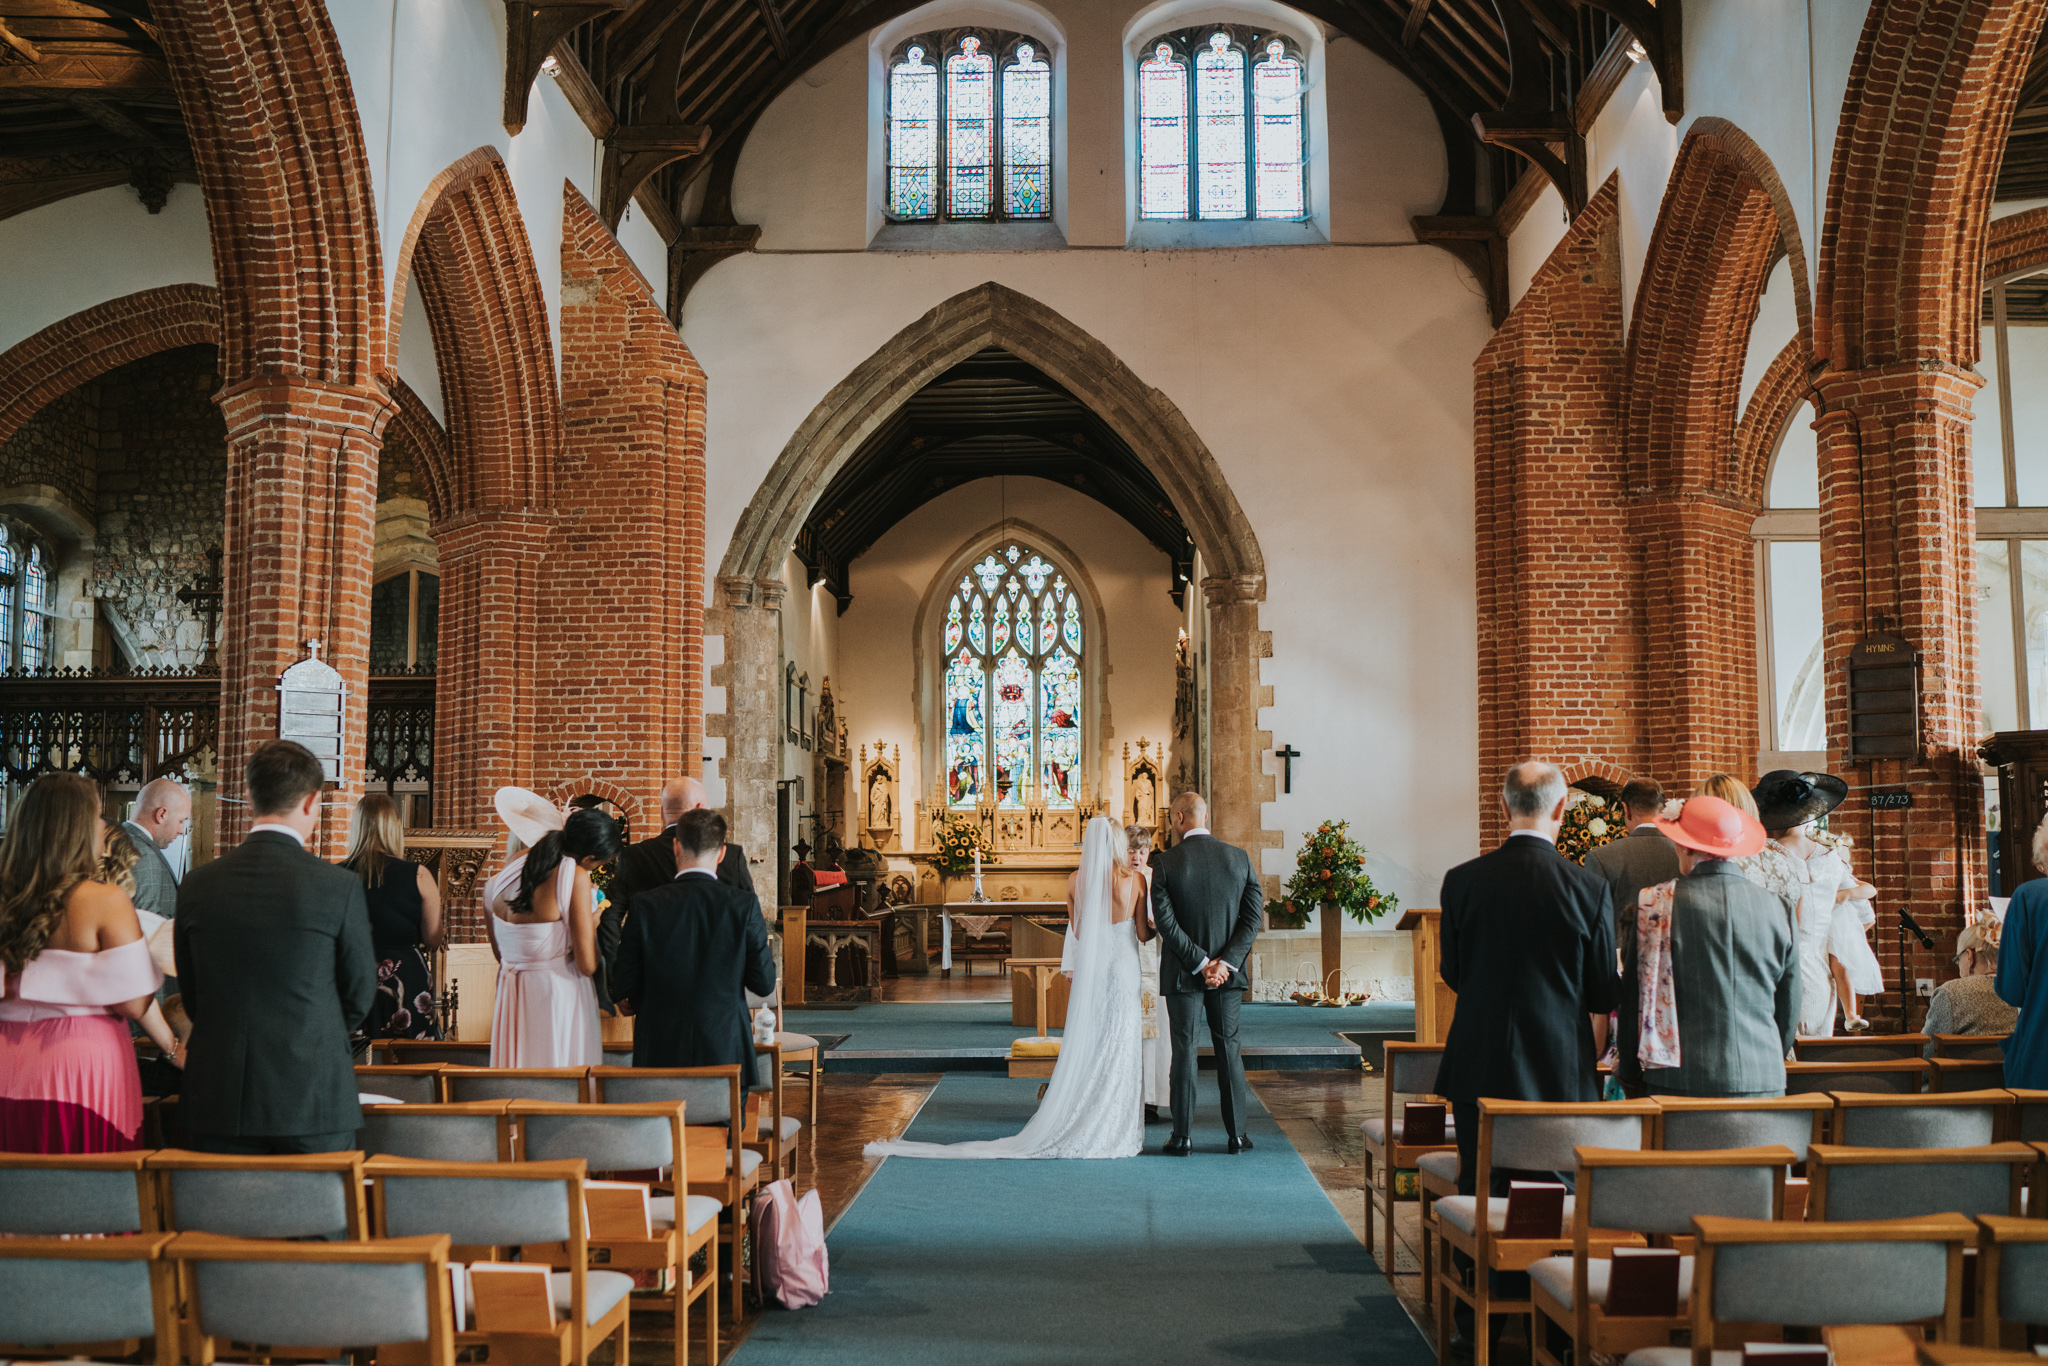 intimate-english-church-wedding-sarah-alex-colchester-essex-grace-elizabeth-colchester-essex-alternative-wedding-lifestyle-photographer-essex-suffolk-norfolk-devon (43 of 92).jpg